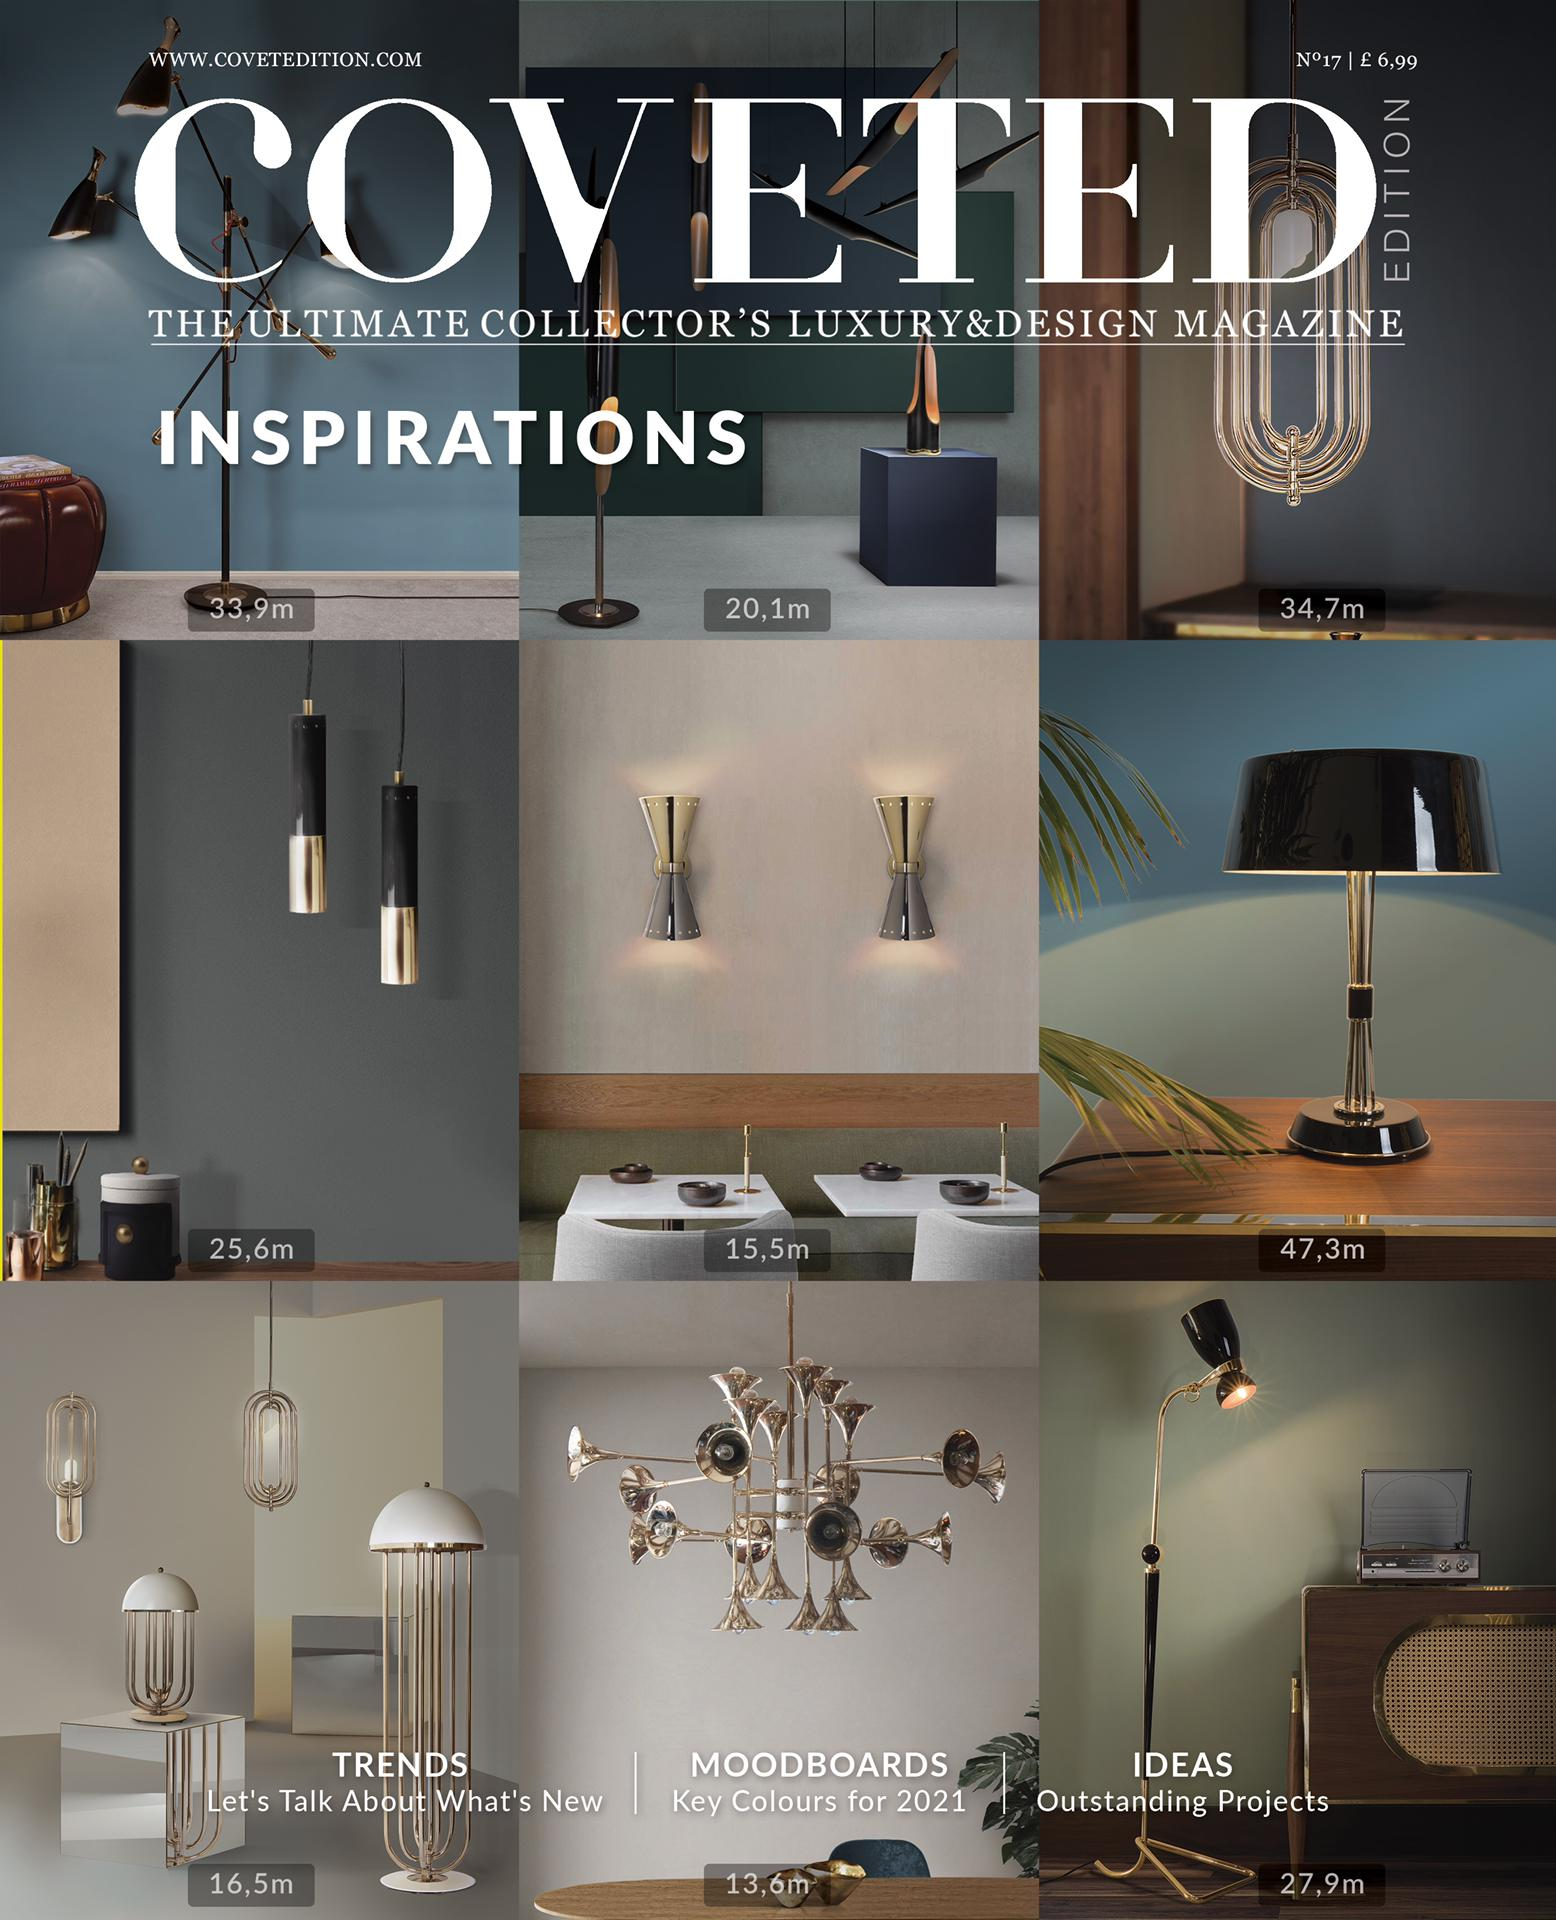 Luxury Design Lovers Alert 🚨 CovetED Magazine is About to Reveil The Ultimate News & Trends For This Year! luxury design Luxury Design Lovers Alert 🚨 CovetED Magazine is About to Reveil The Ultimate News & Trends For This Year! 1 1